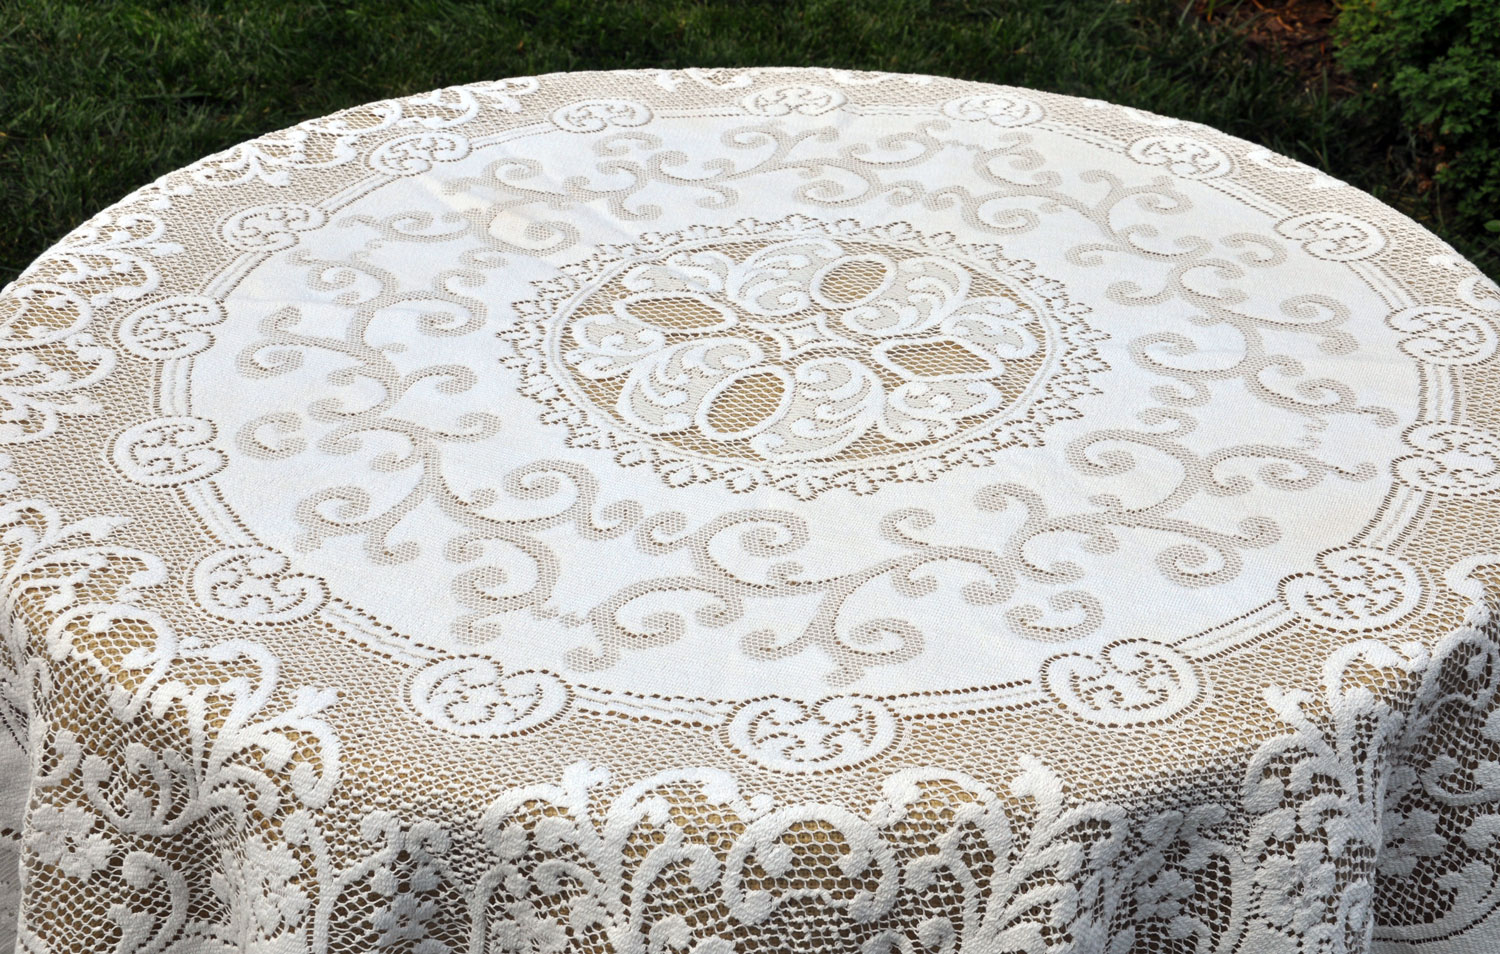 Bulk Lace Tablecloths | 60 Inch Round Tablecloths | Lace Tablecloths